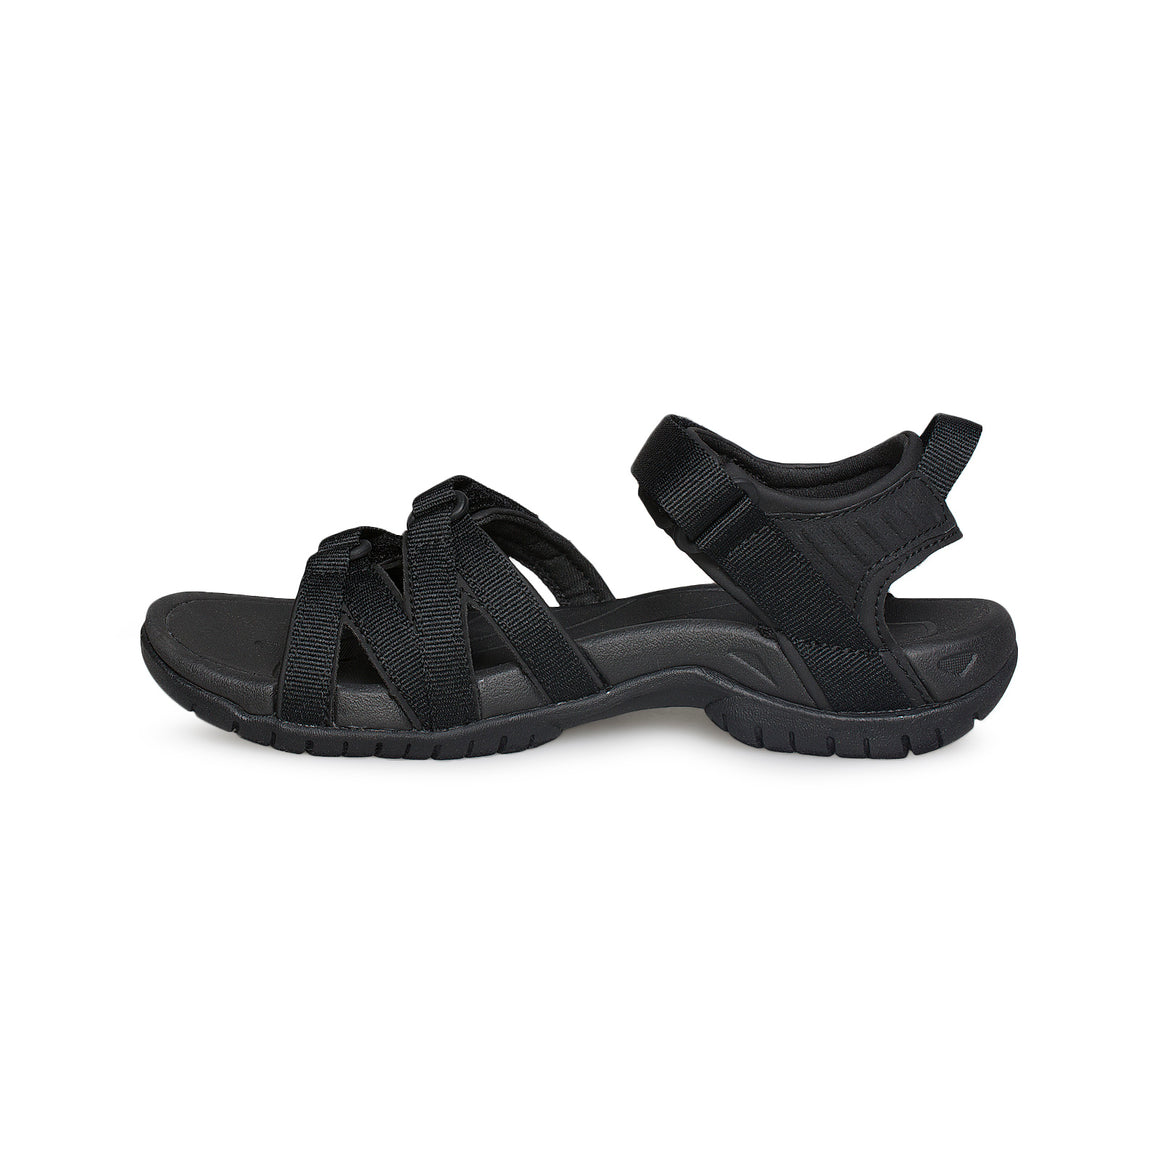 Teva Tirra Black / Black Sandals - Women's